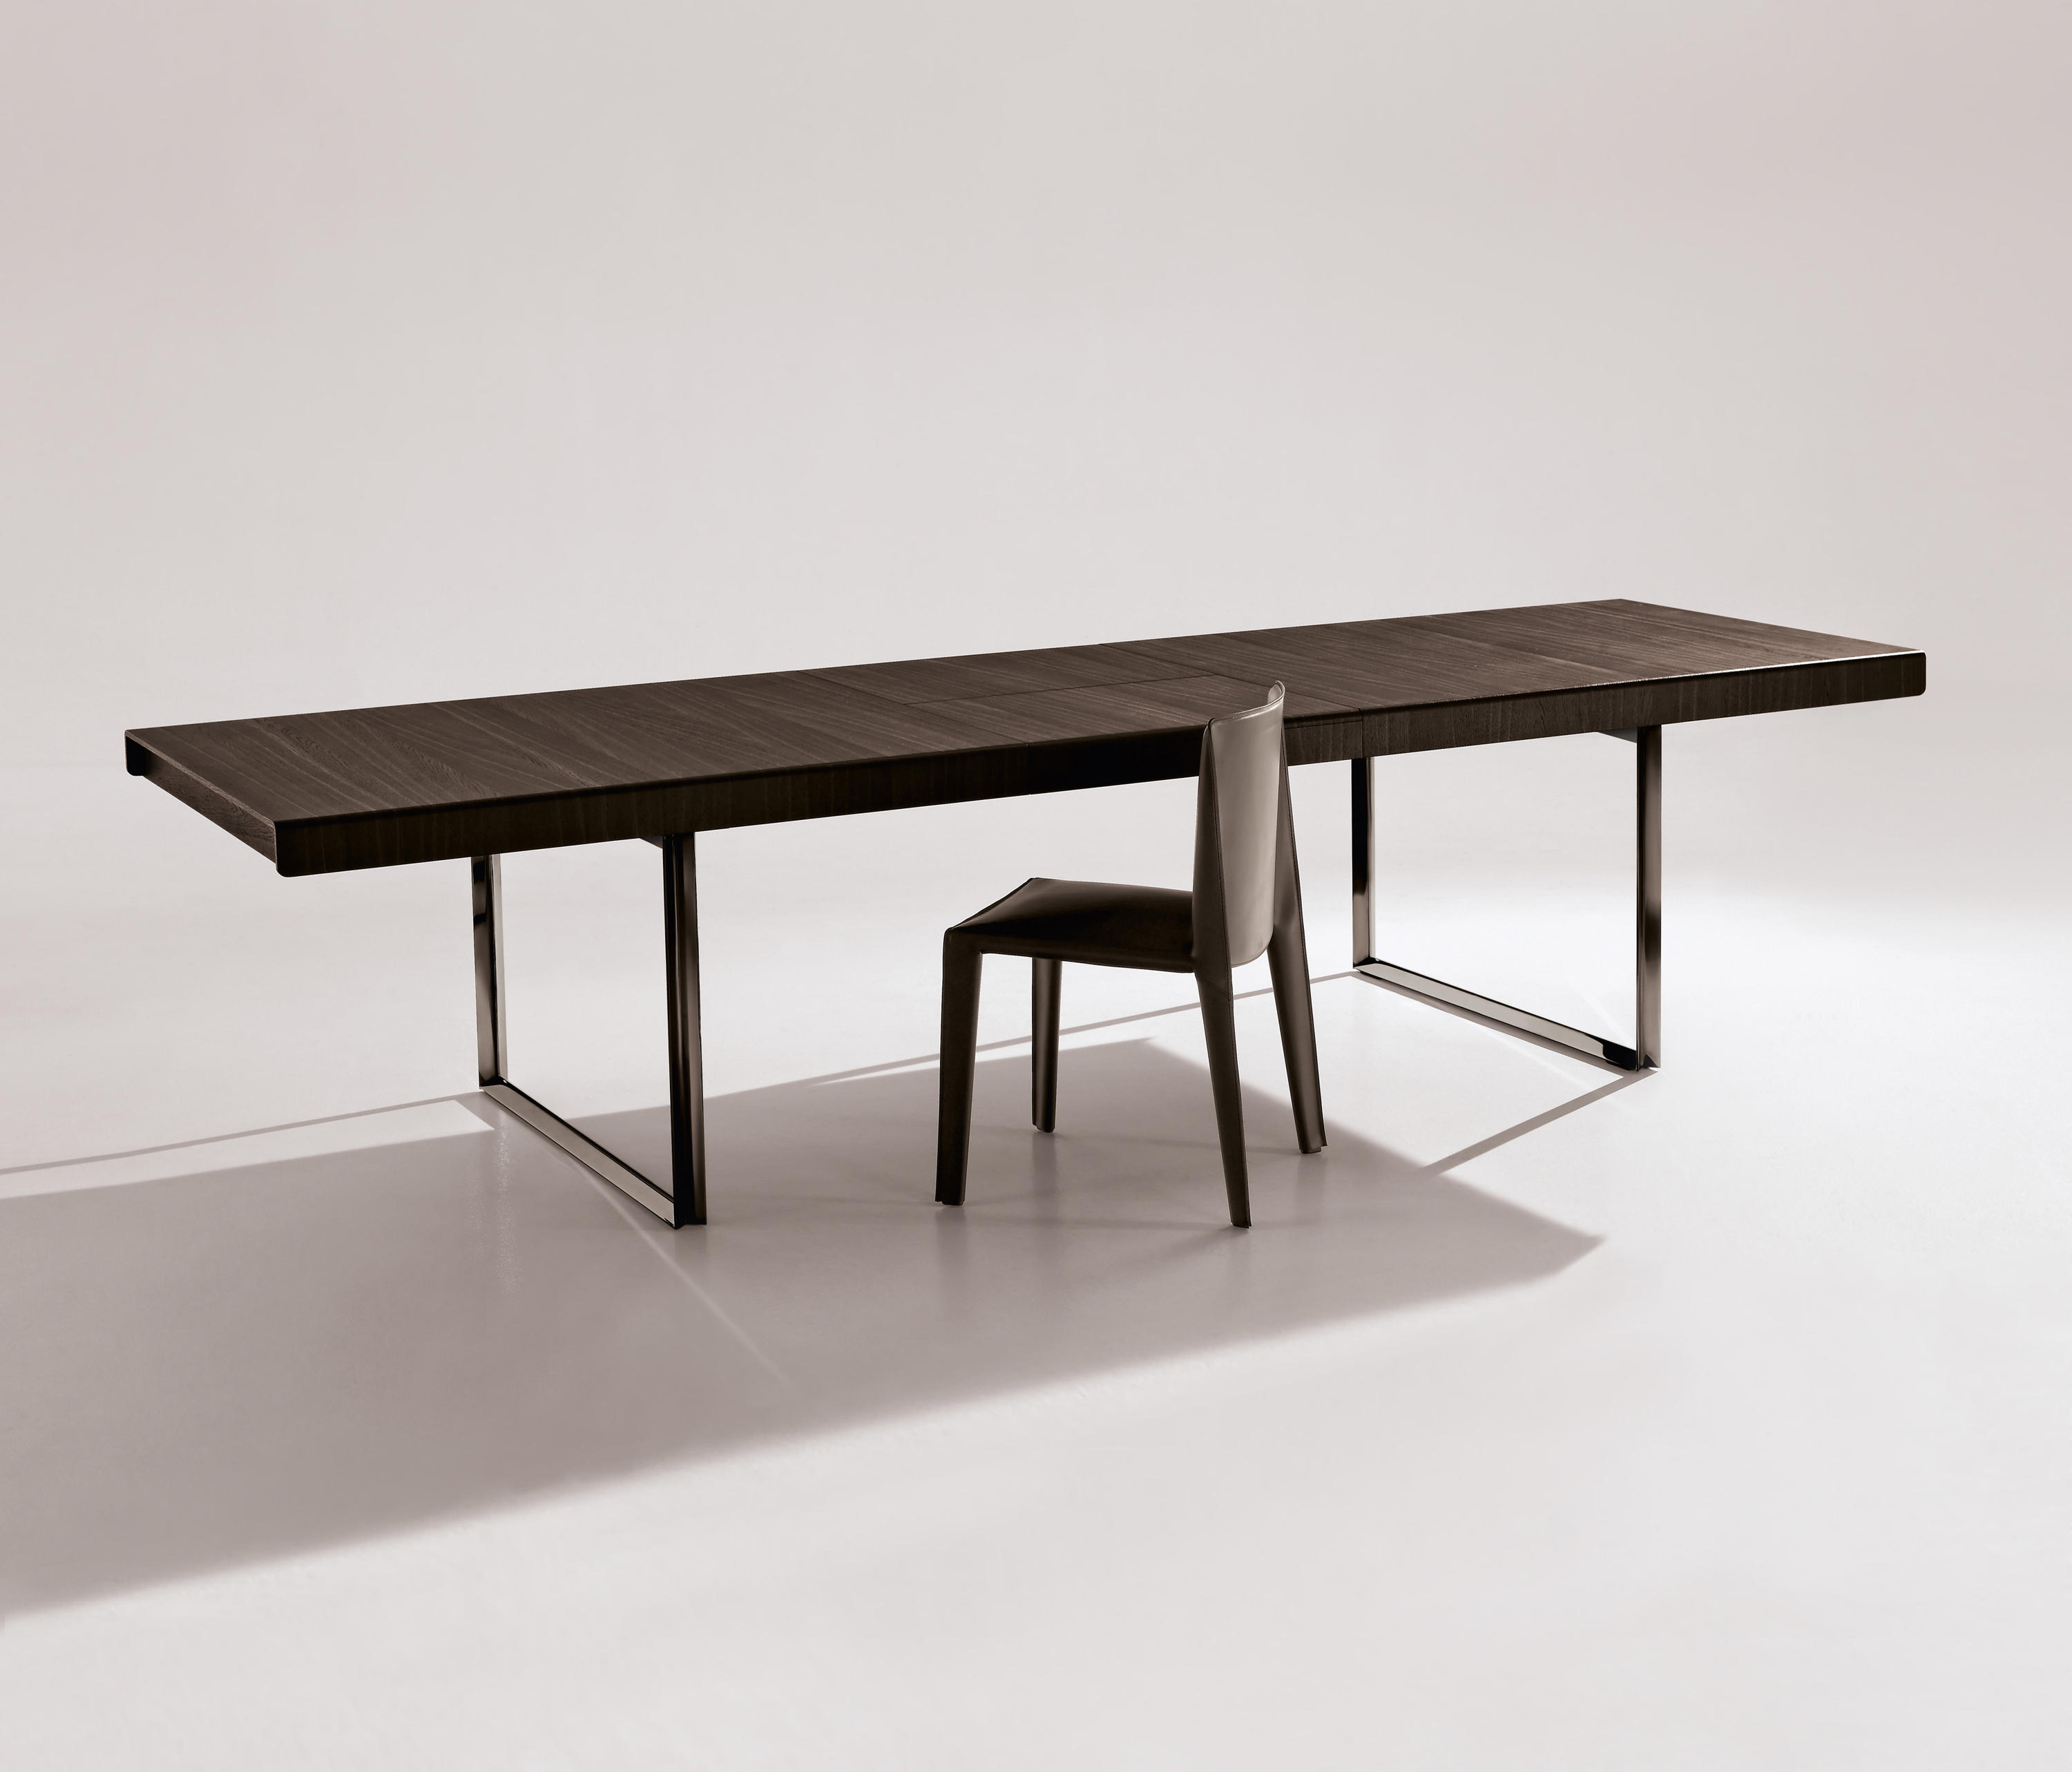 ATHOS 12 Dining tables from B&B Italia